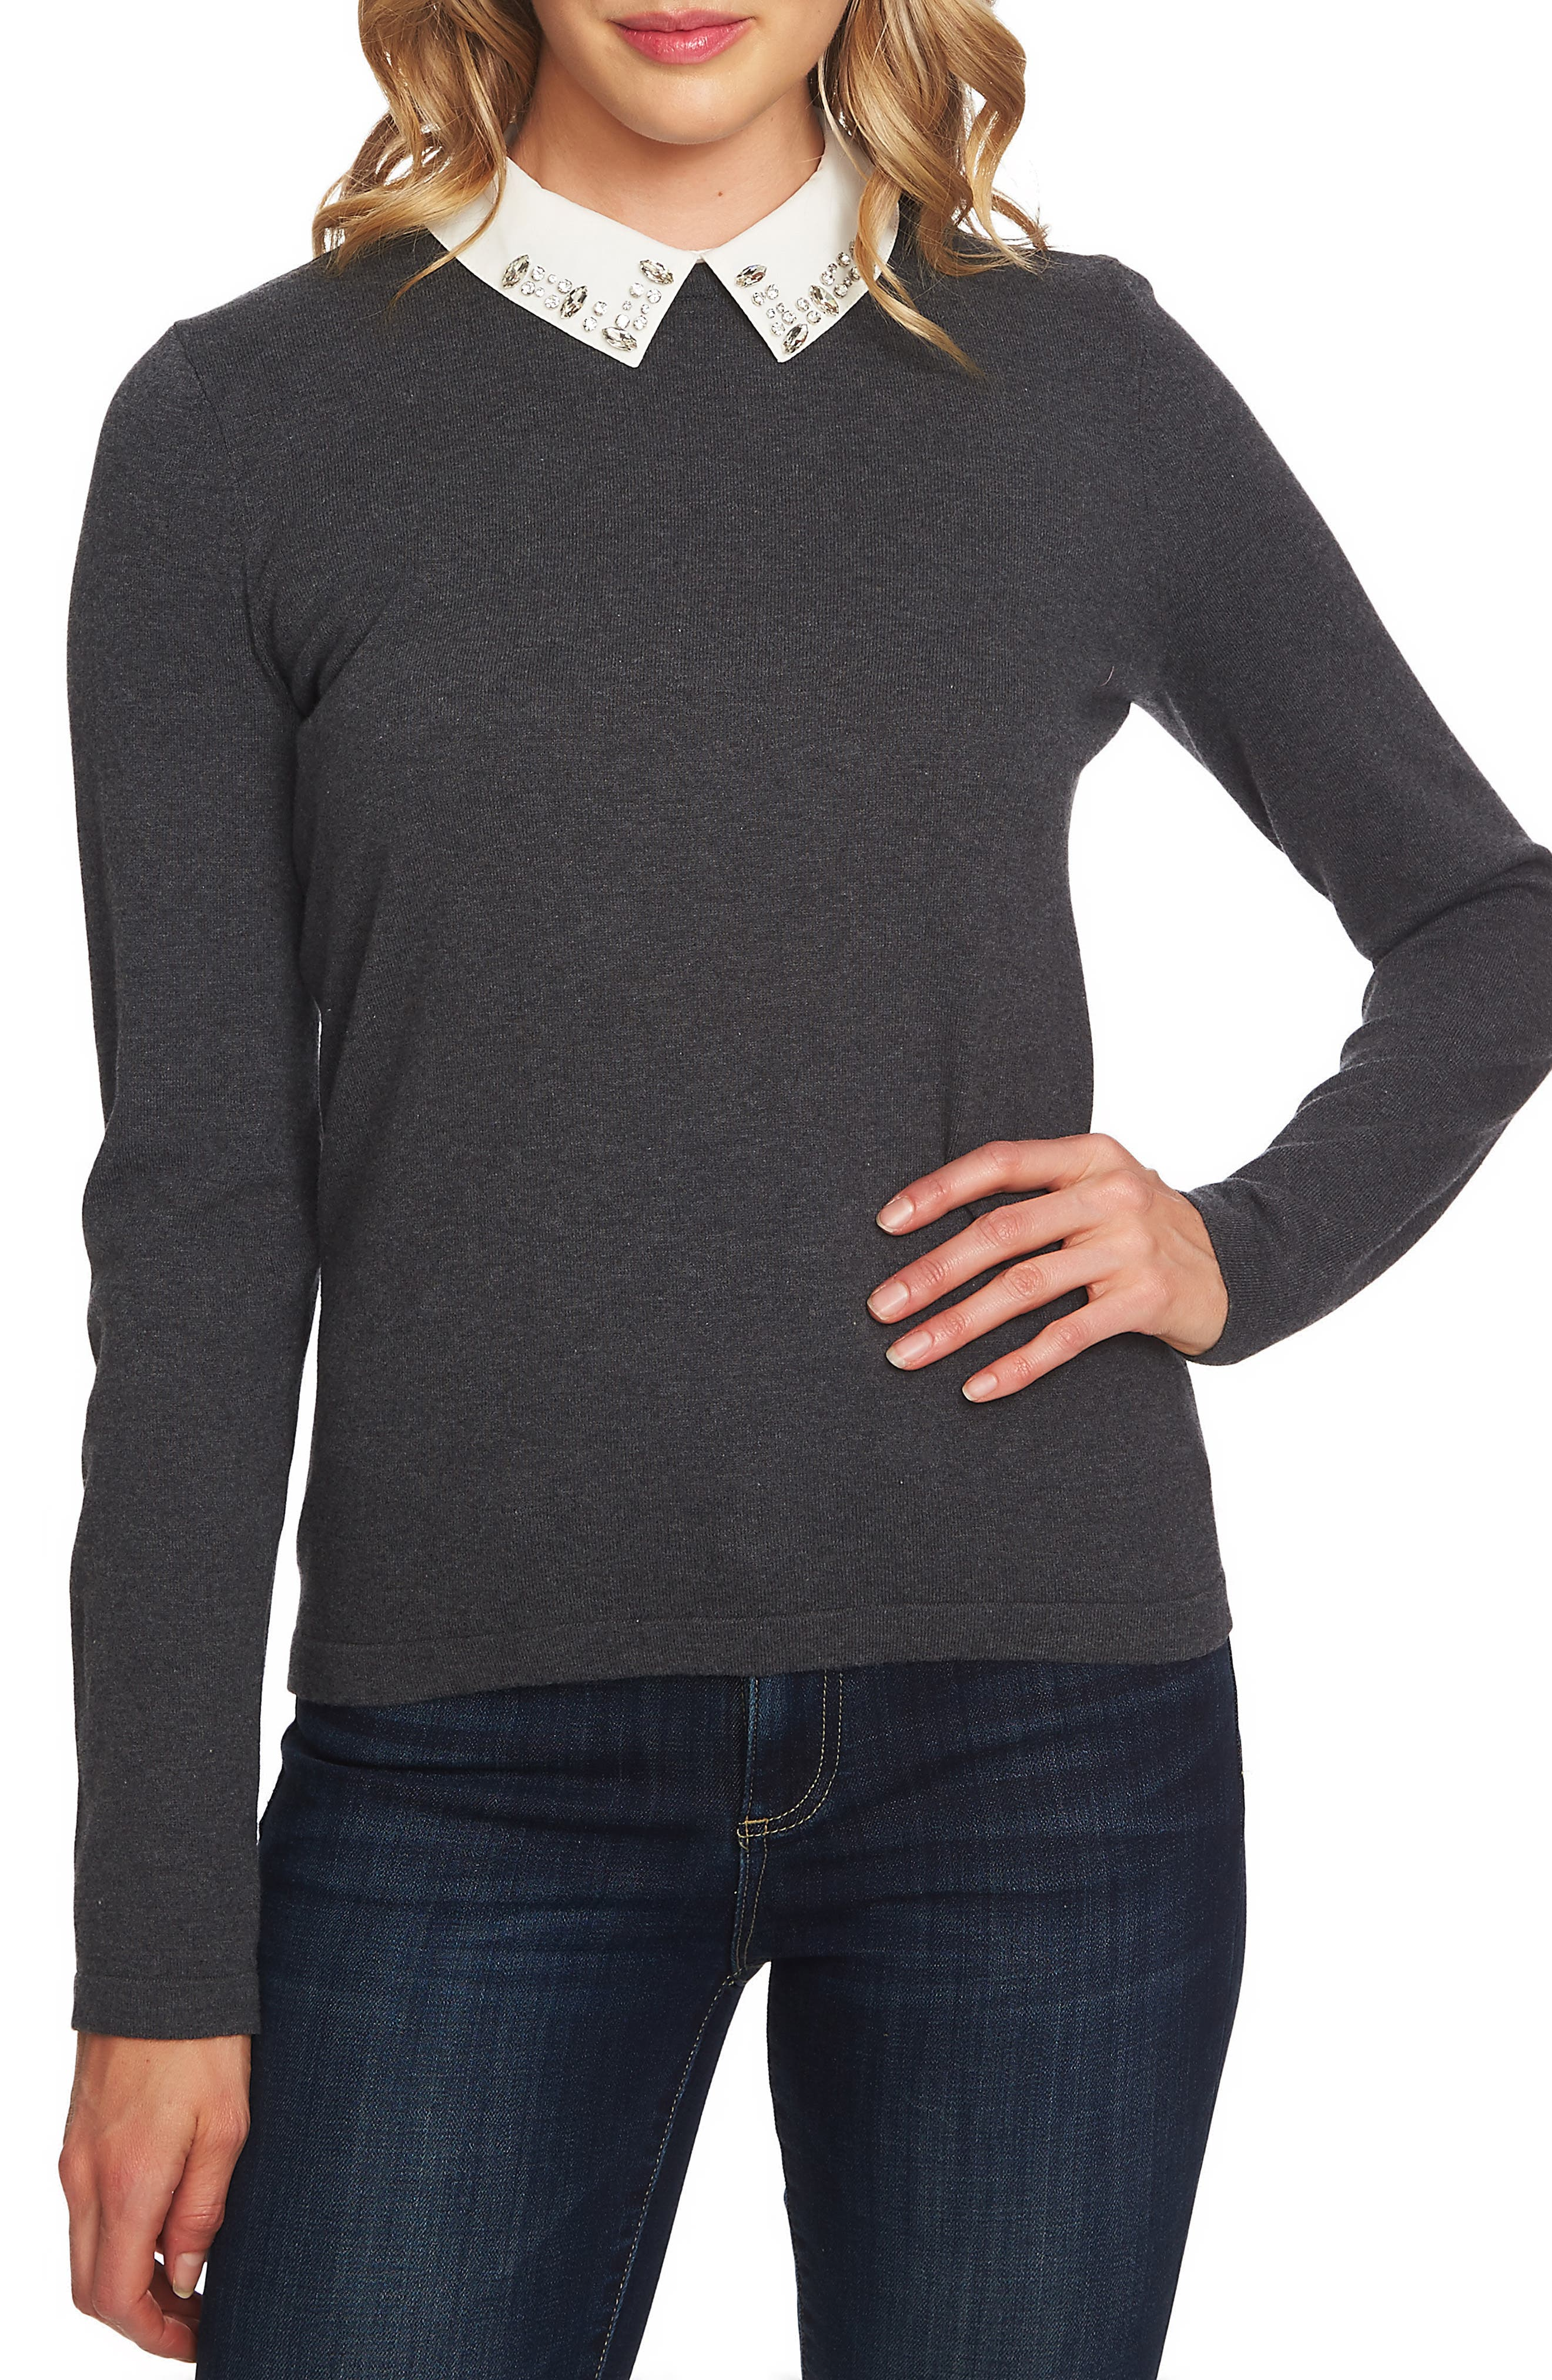 Embellished Collar Cotton Blend Sweater,                             Main thumbnail 1, color,                             020